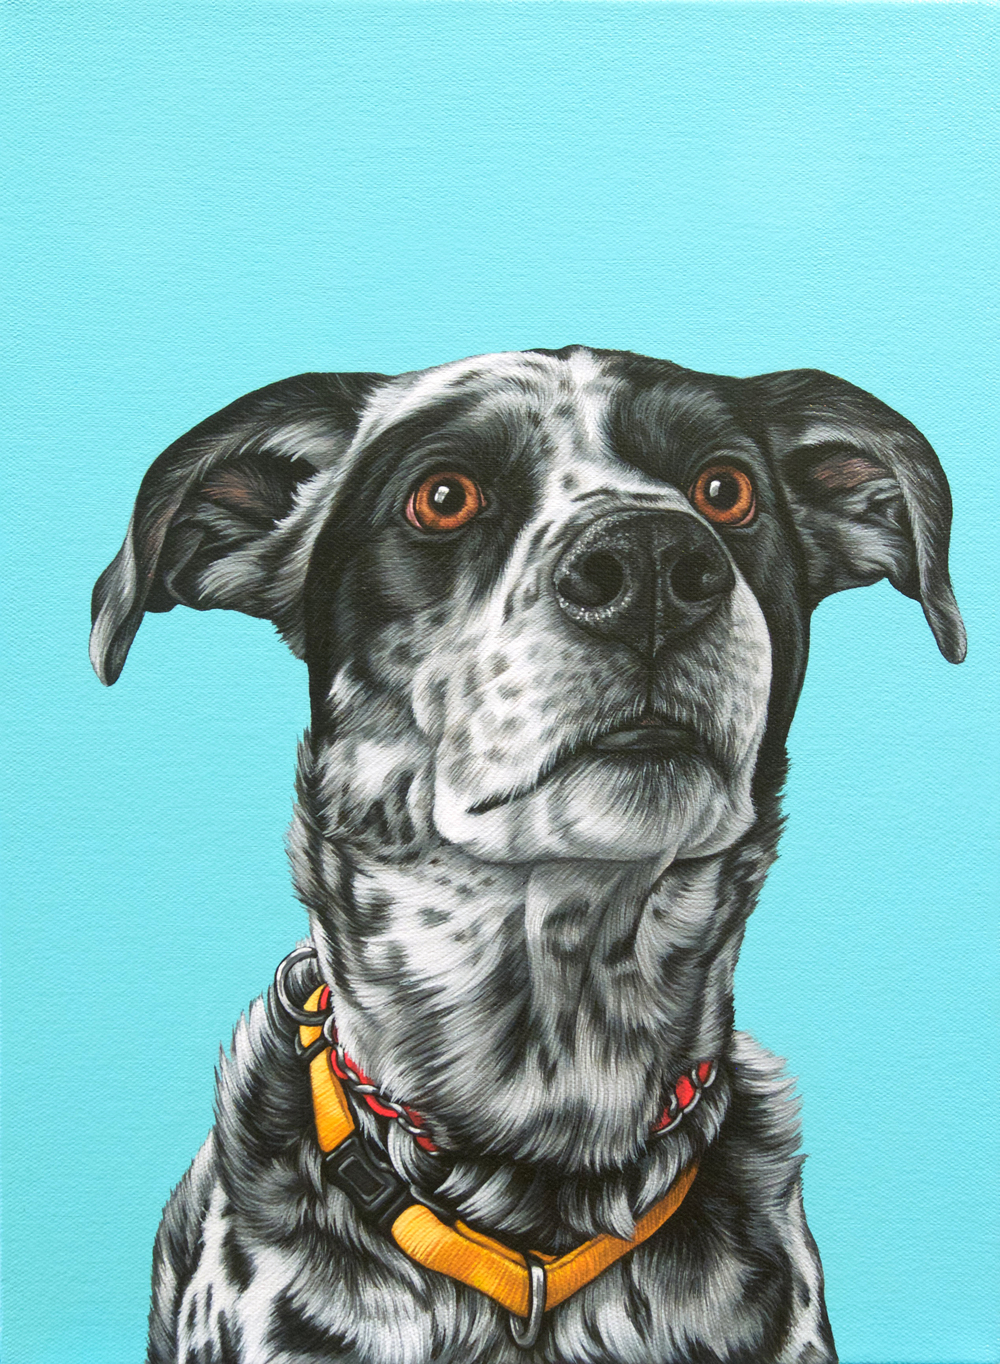 """Sebastien"", latex enamel on canvas, 12""x 15"", 2016"